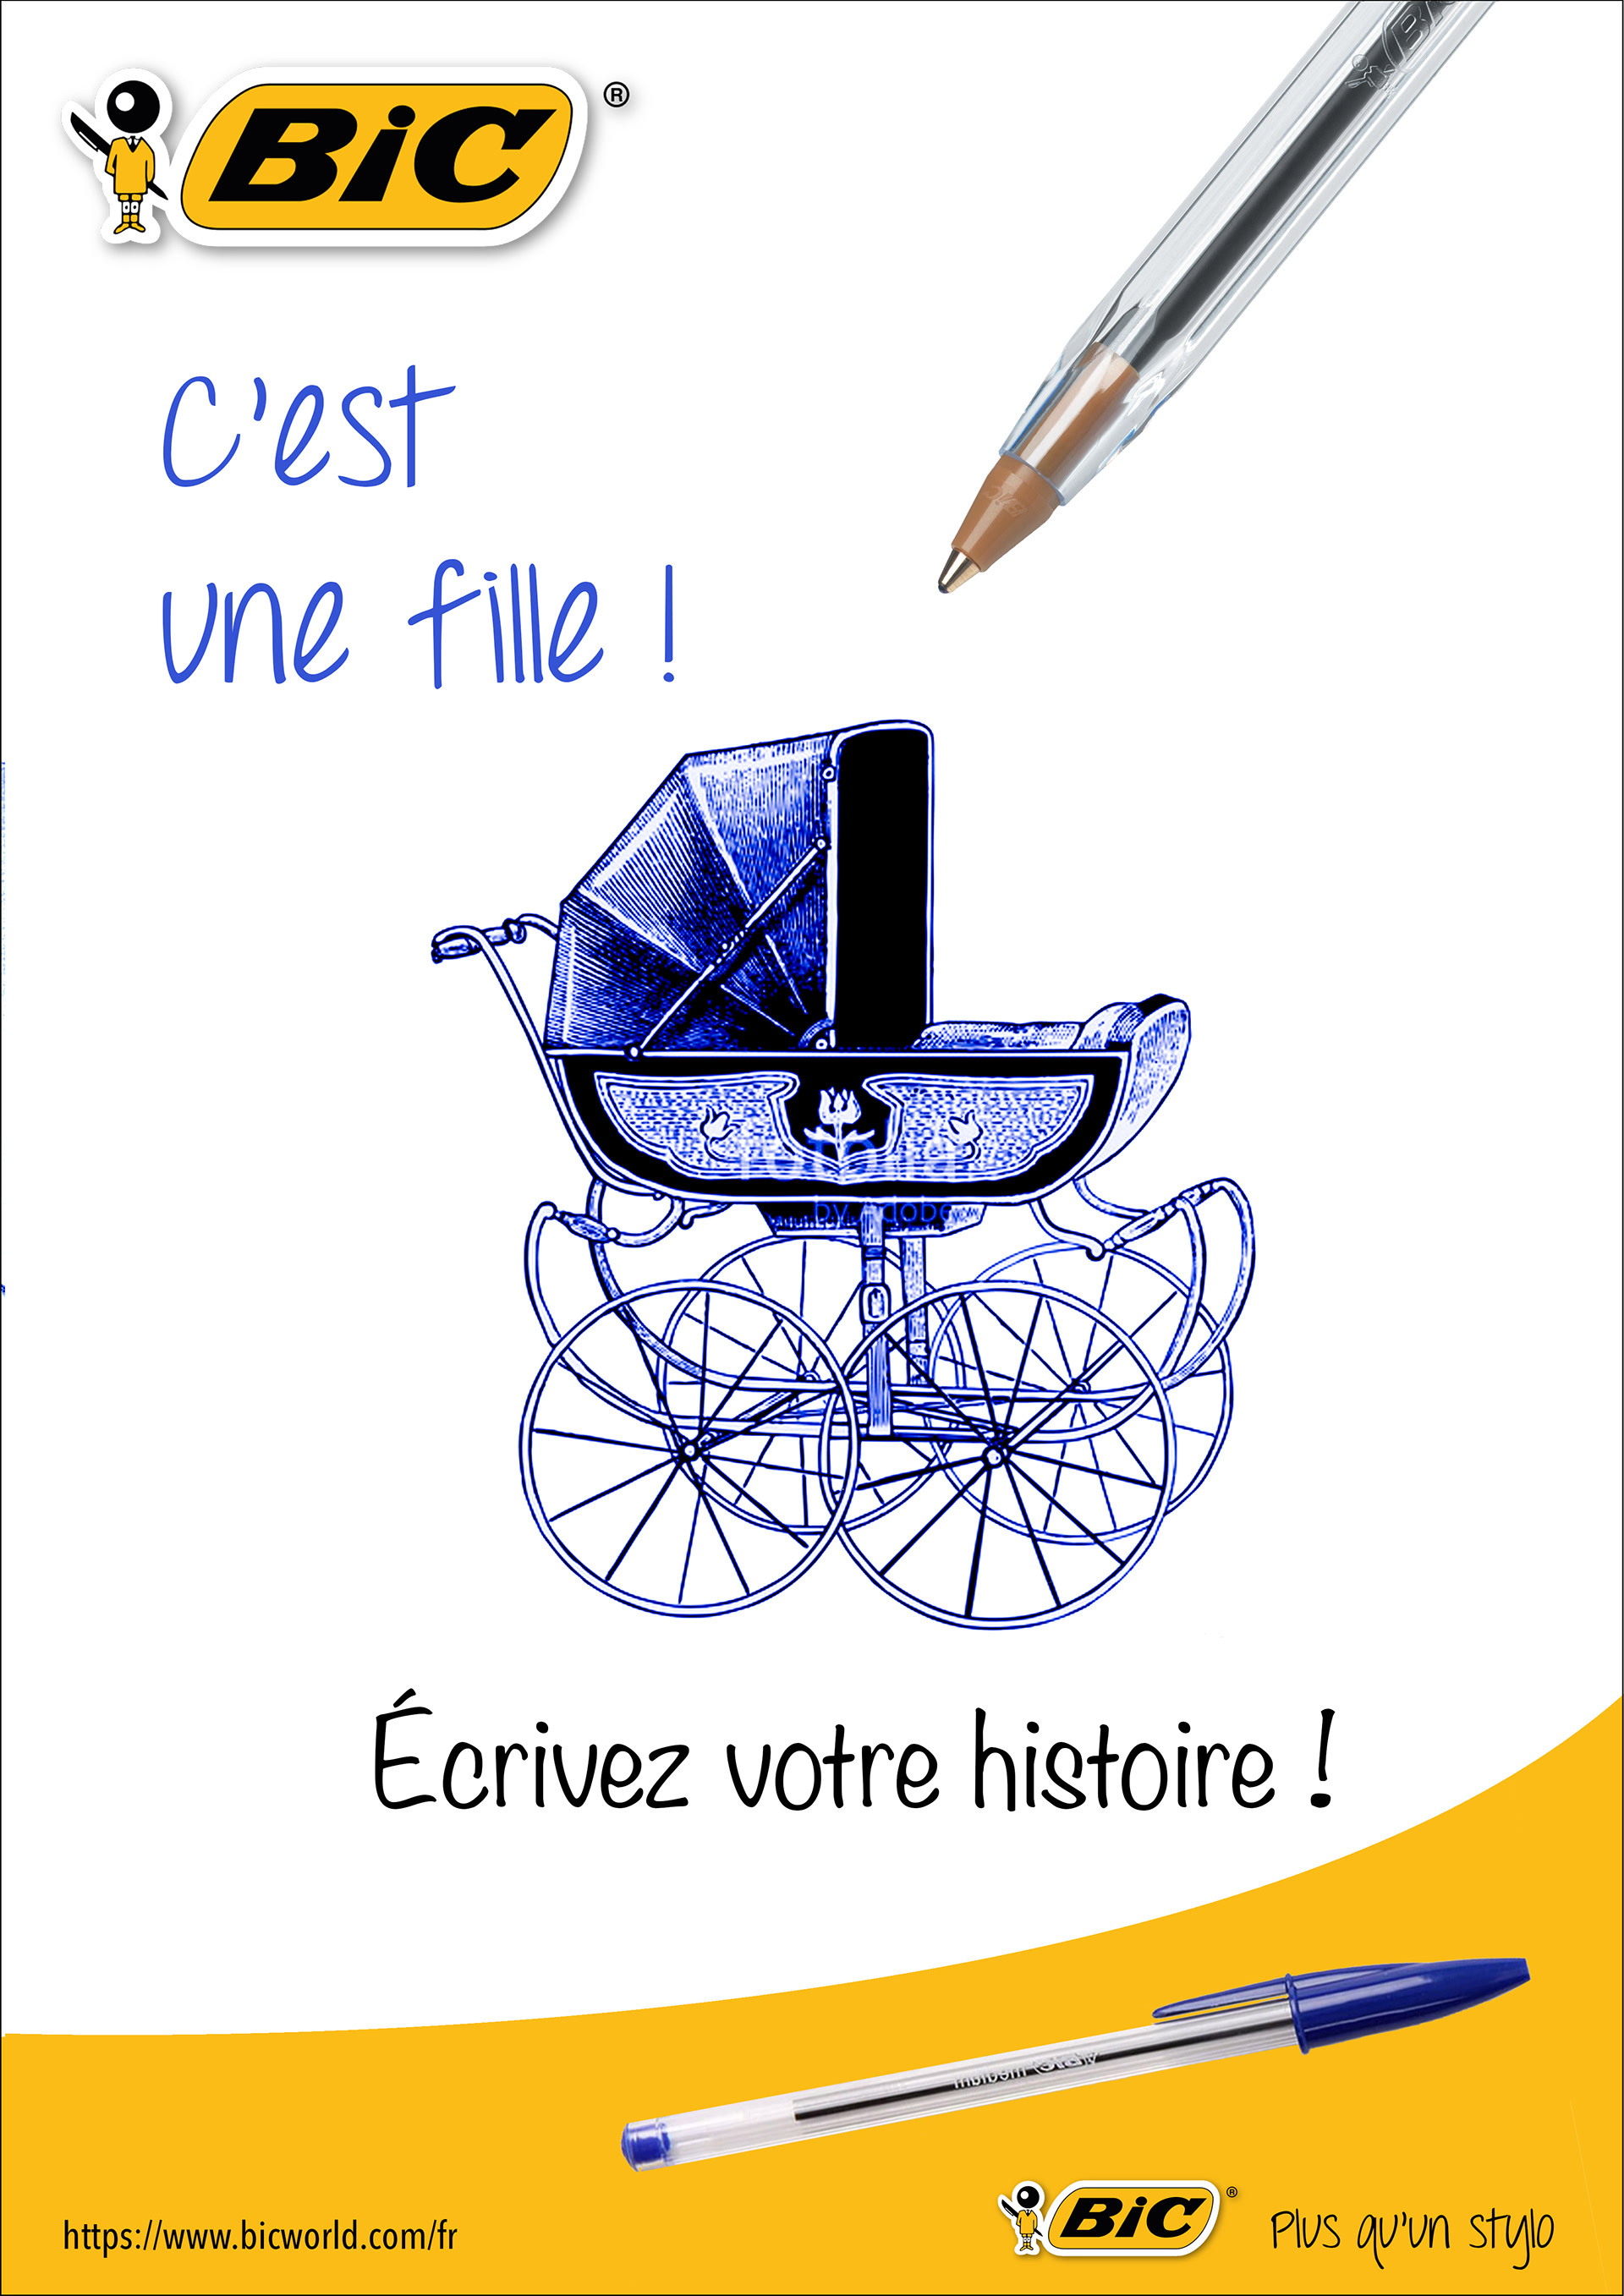 Elodie Caillaud Campagne Publicitaire Bic